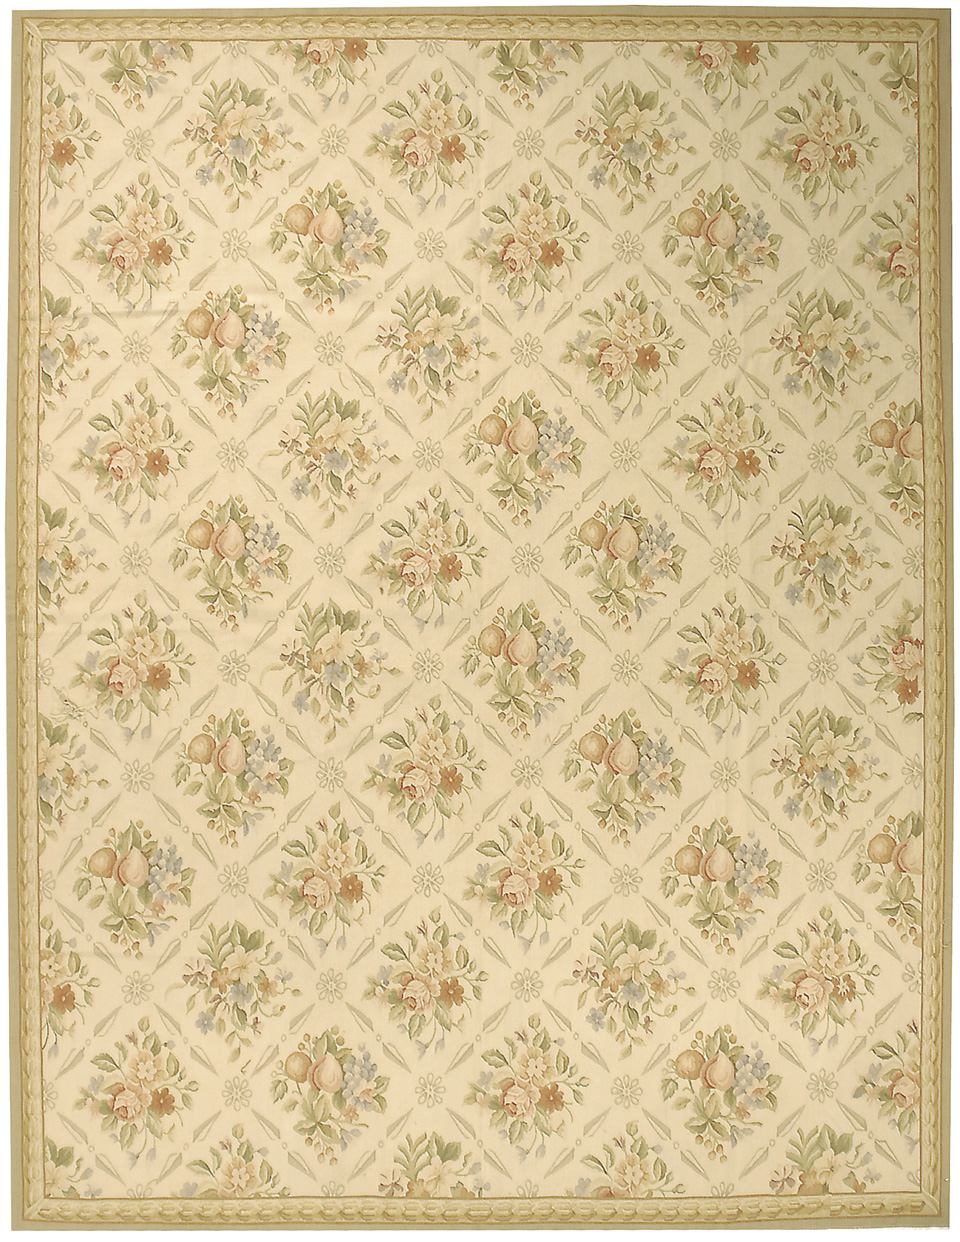 Hand Woven Wool French Aubusson Flat Weave Fruit Ivory